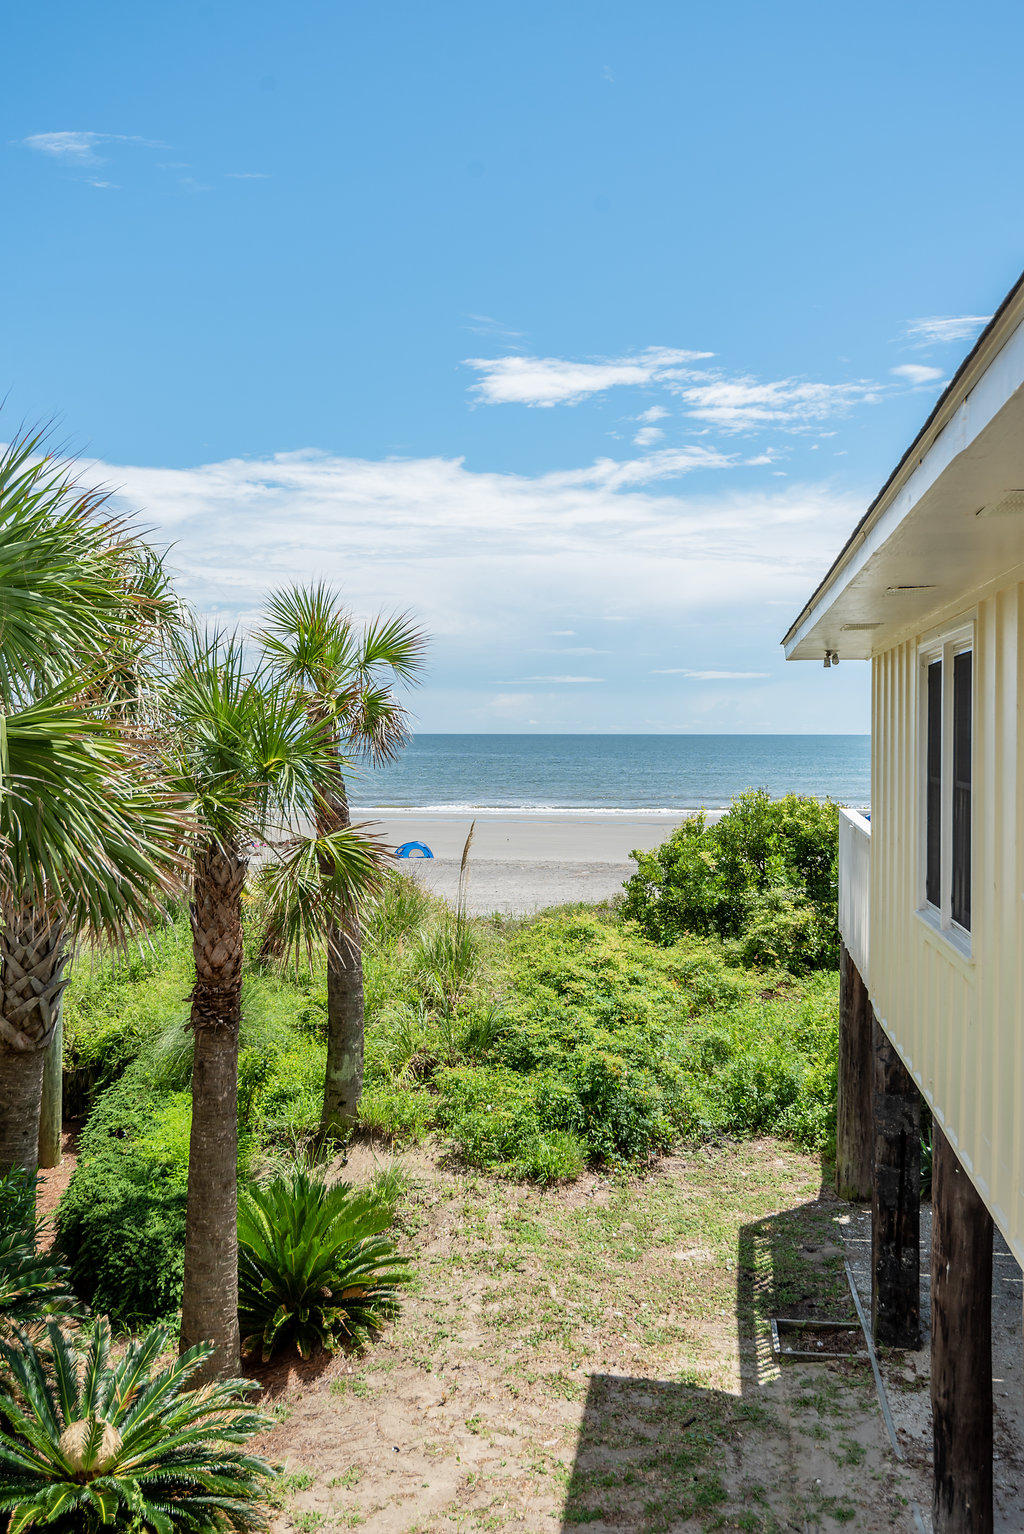 Folly Beach Homes For Sale - 903 Ashley, Folly Beach, SC - 37